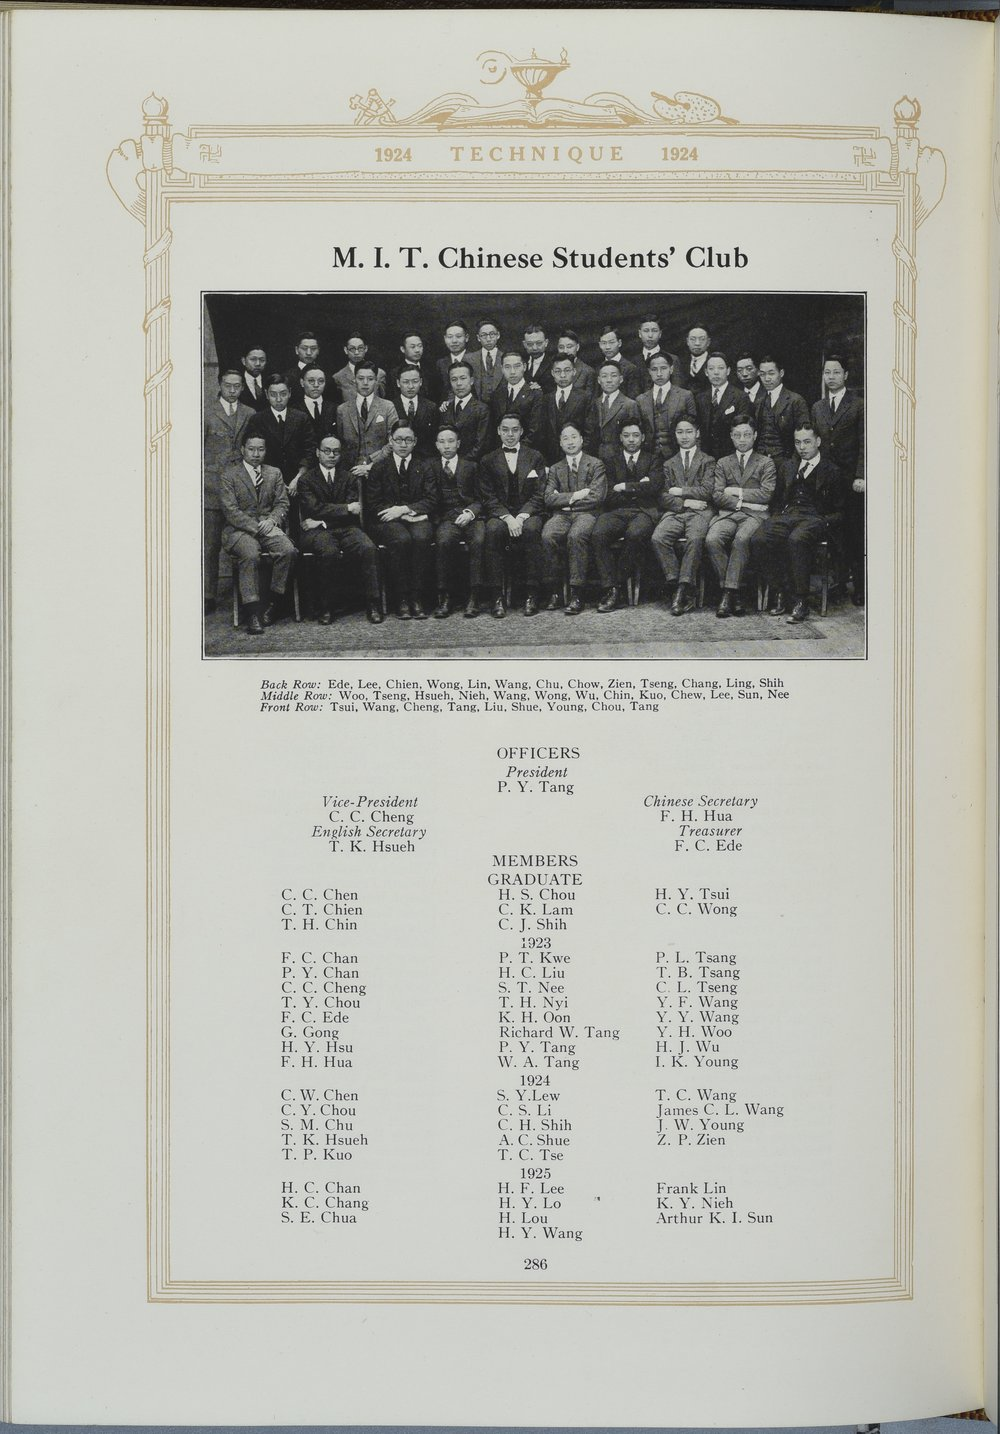 CSC group photo in MIT Technique 1924, 286. Image courtesy MIT Archives and Special Collections.